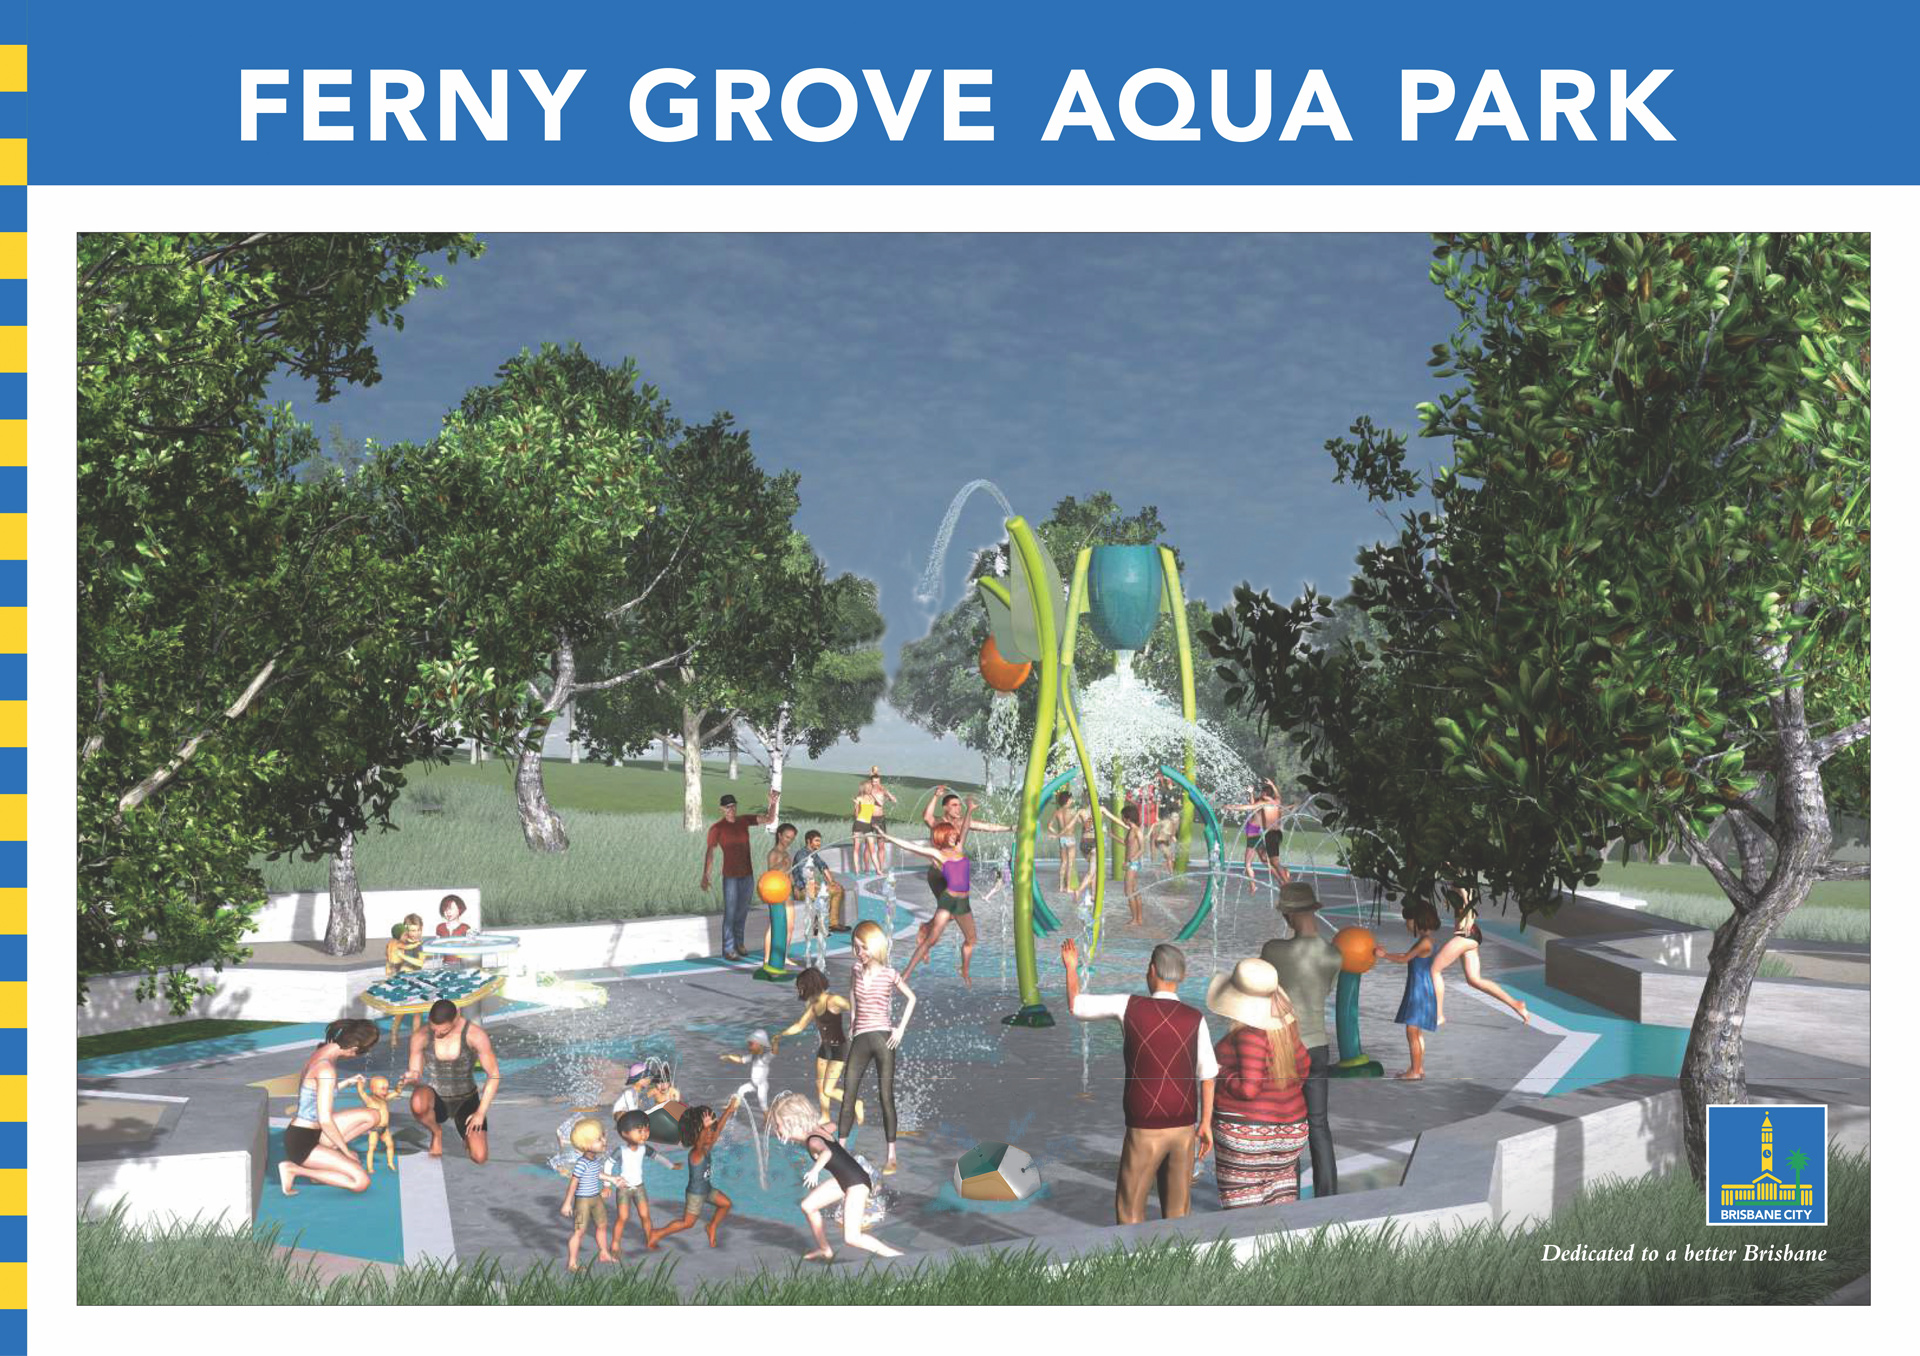 Ferny-Grove-Aqua-Park-project-plan-July-2018